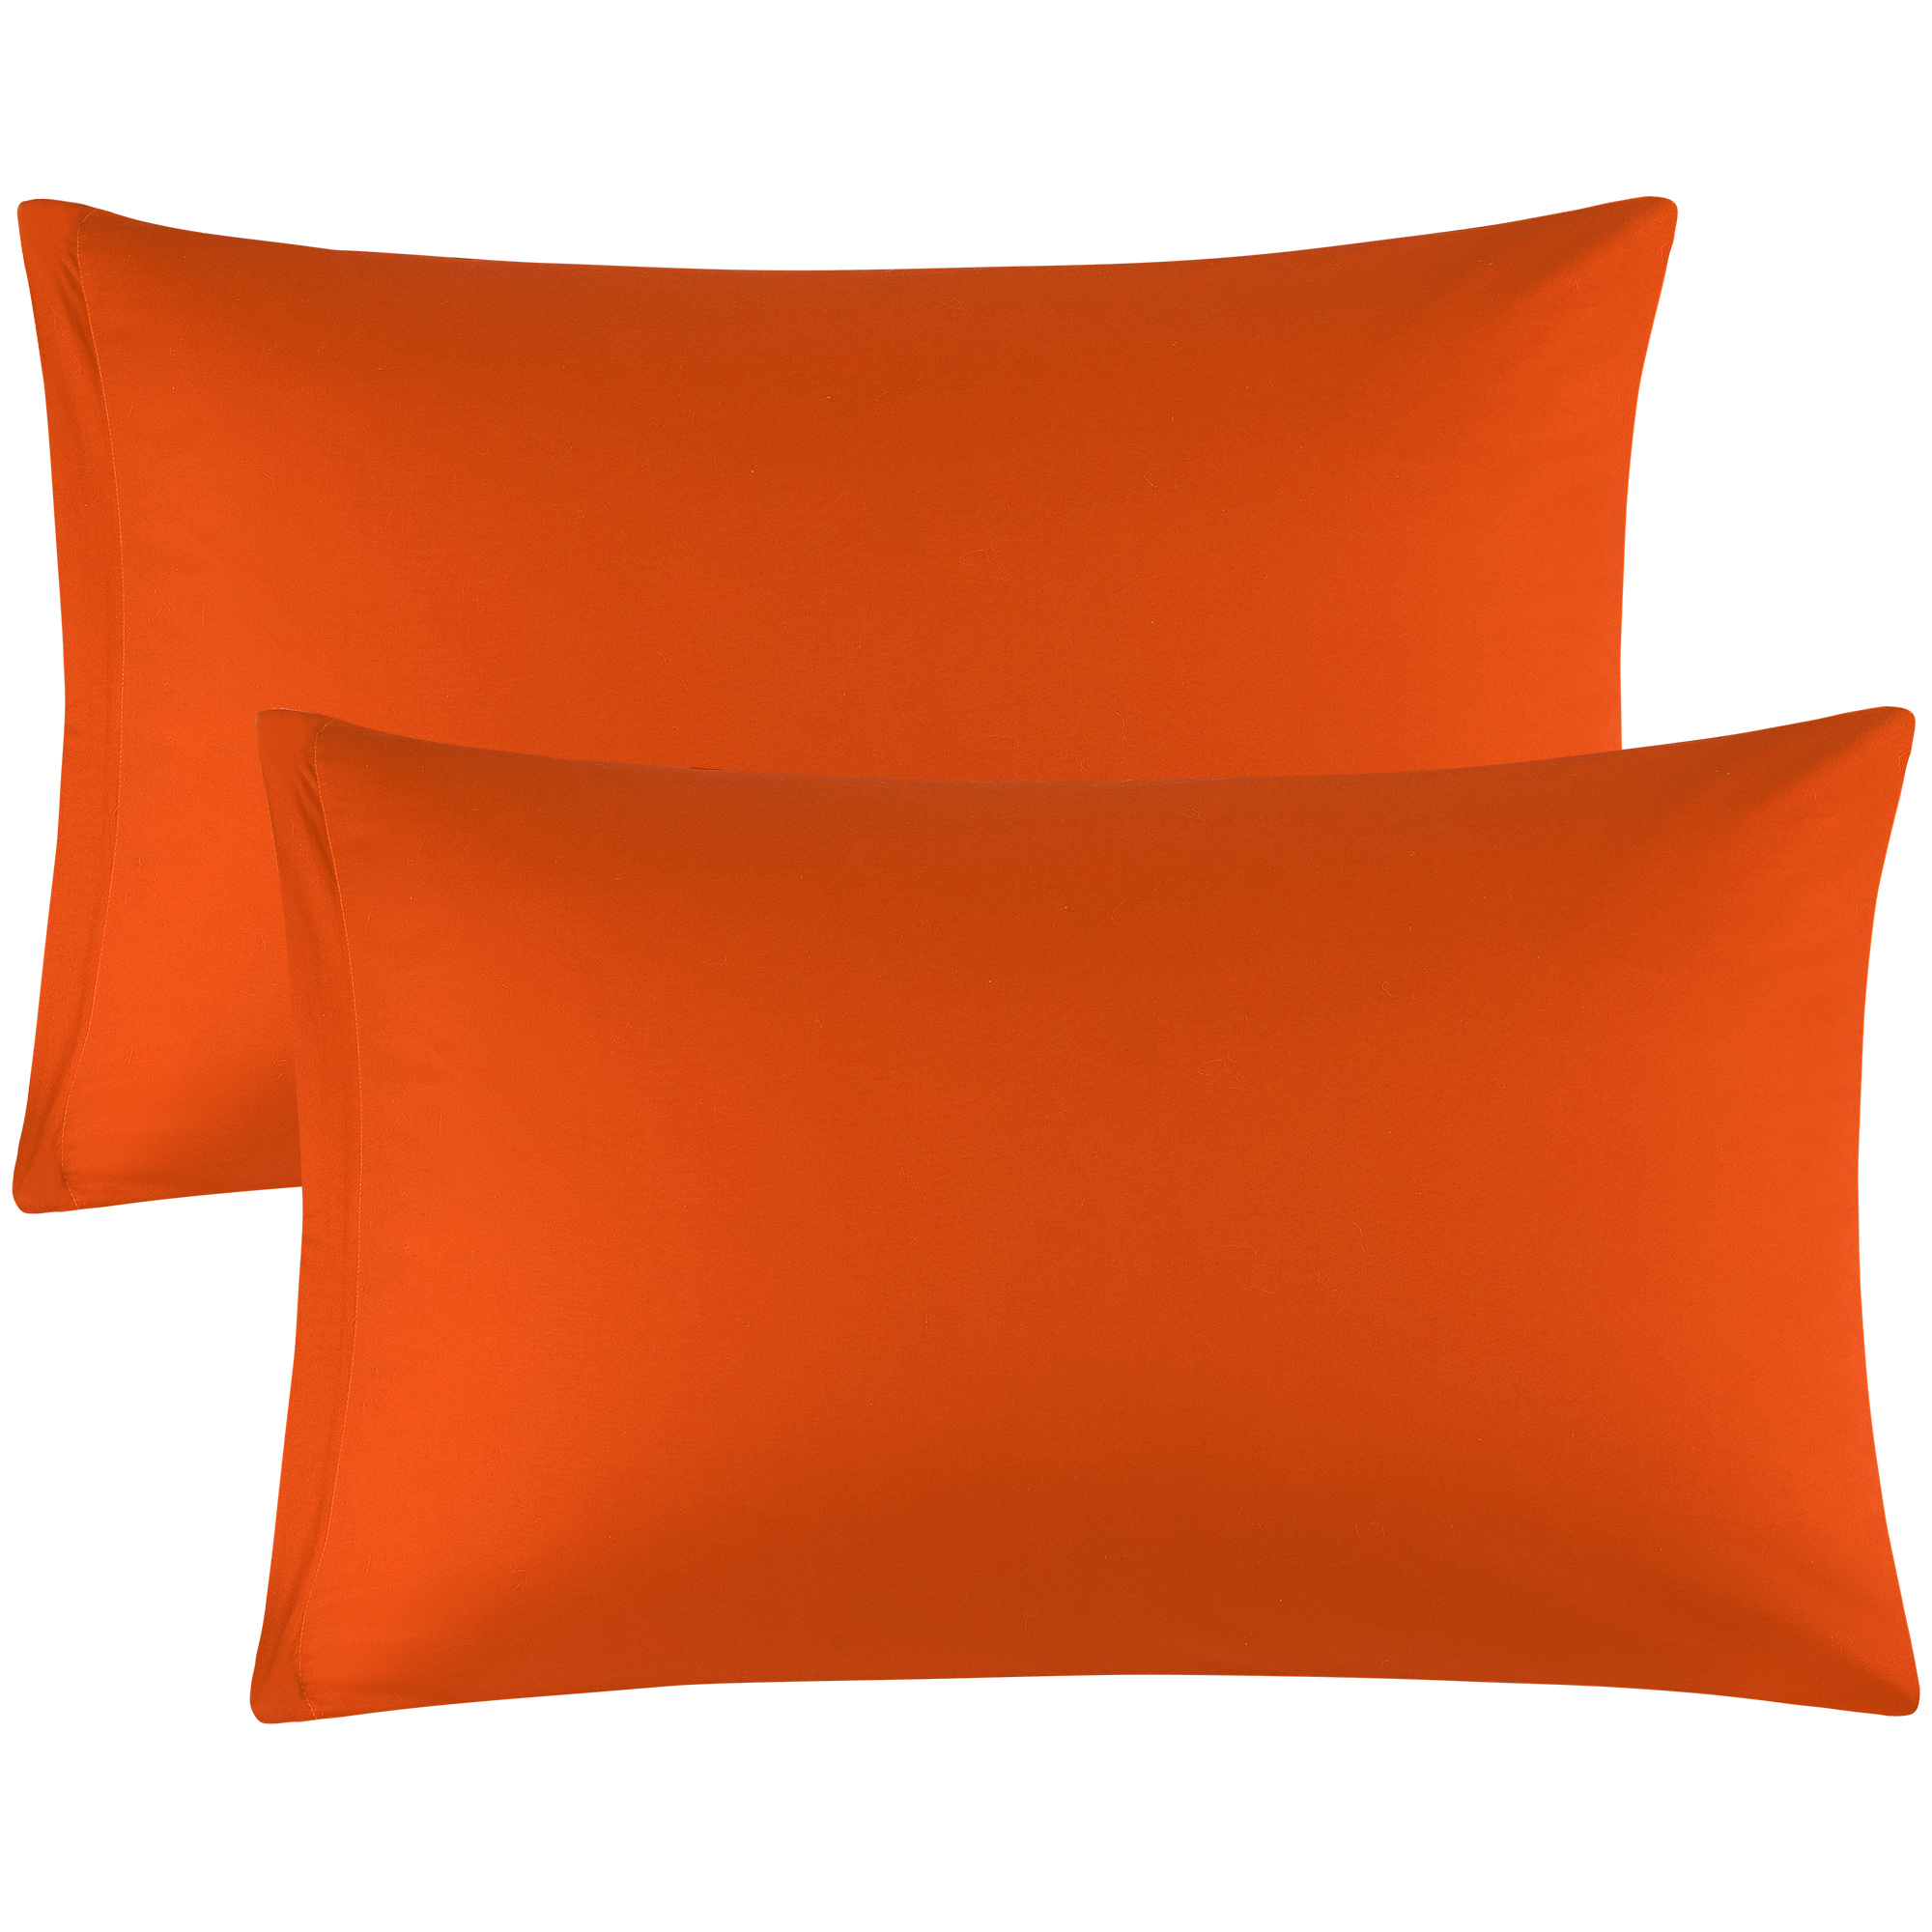 Egyptian Cotton Pillowcases Covers Zippered Cases Orange 20 x 30 Inch 2-Pack